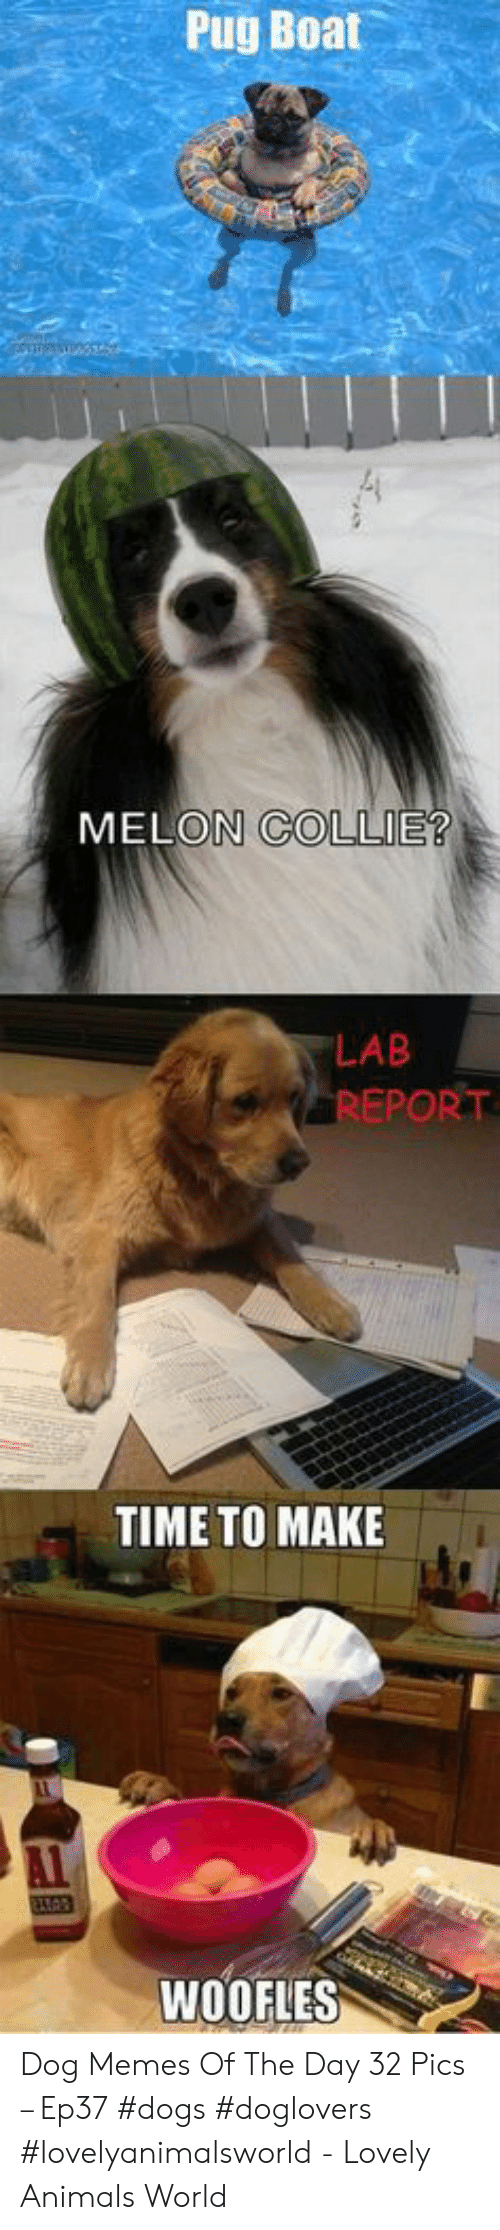 collie: Pug Boat  MELON COLLIE?  LAB  REPORT  TIME TO MAKE  WOOFLES Dog Memes Of The Day 32 Pics – Ep37 #dogs #doglovers #lovelyanimalsworld - Lovely Animals World